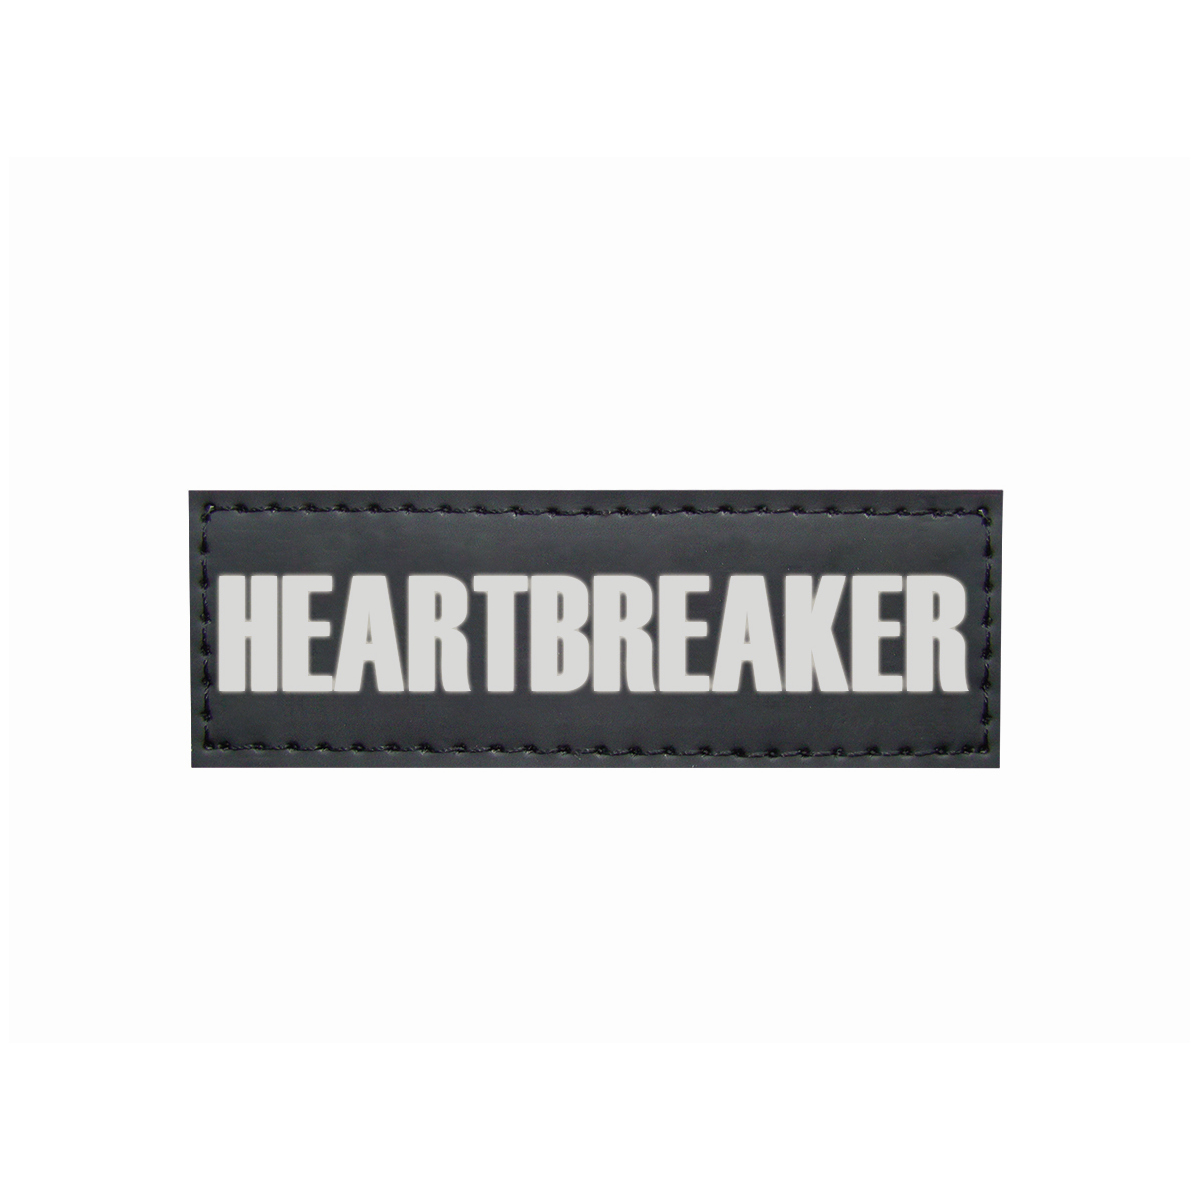 NB STICKER V. SEGURO H.BREAKER 00001